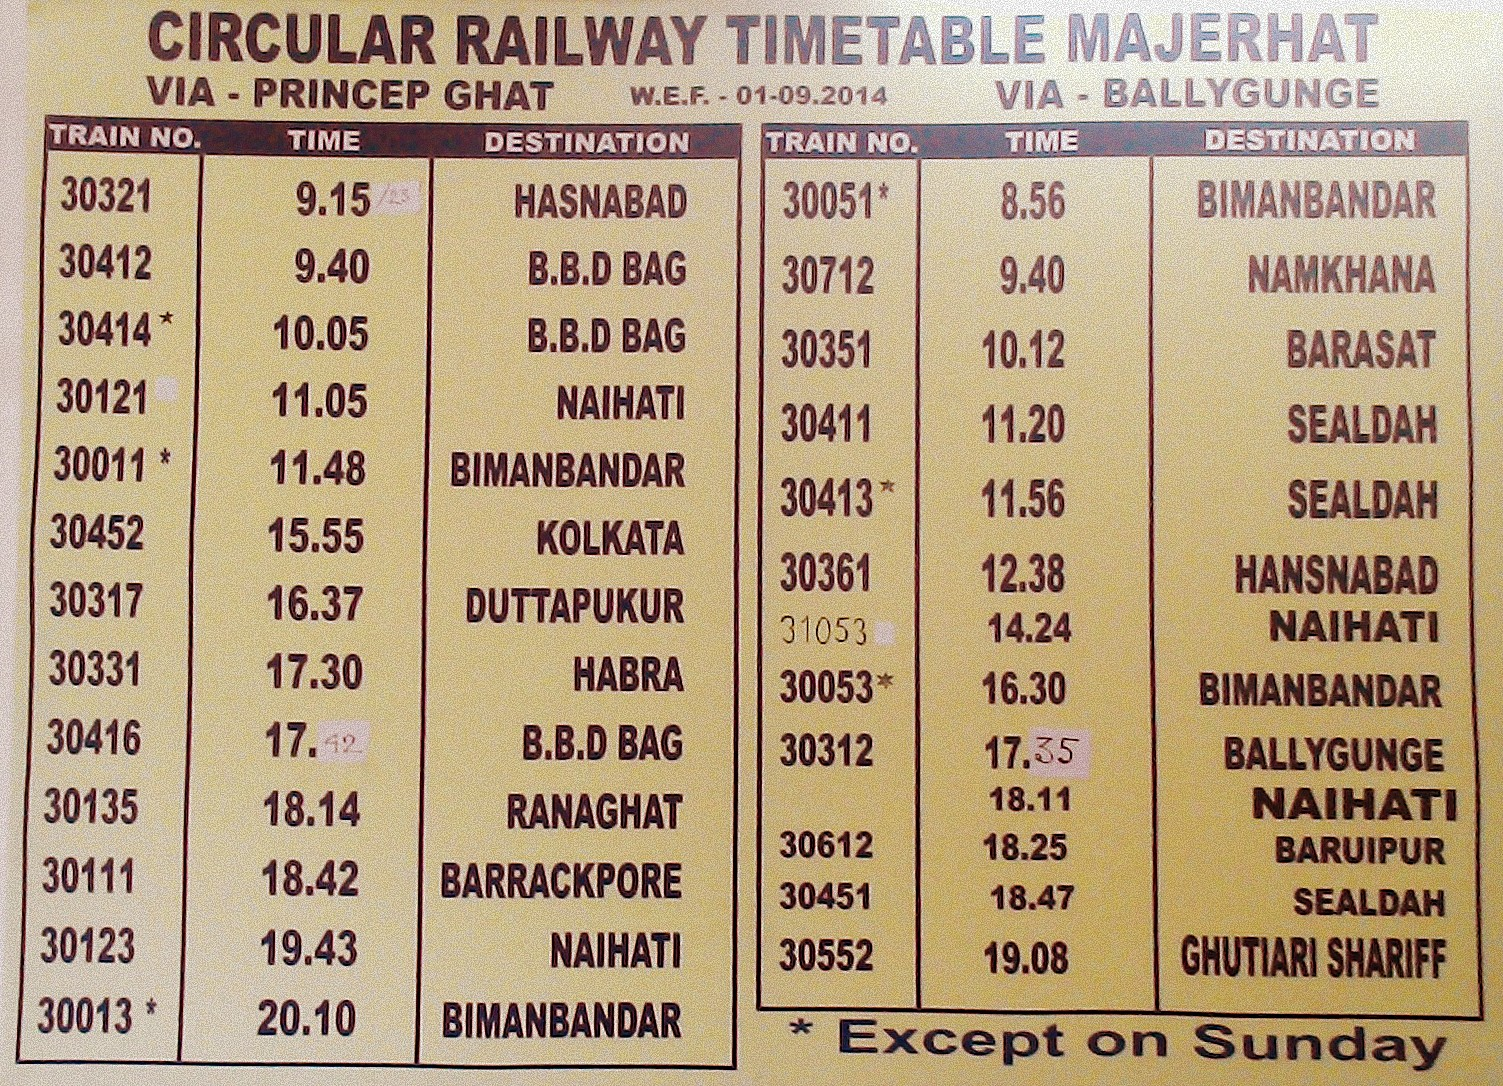 Times Table Chart 1 100: MJT Circular Railway TimeTable.jpg - Wikimedia Commons,Chart